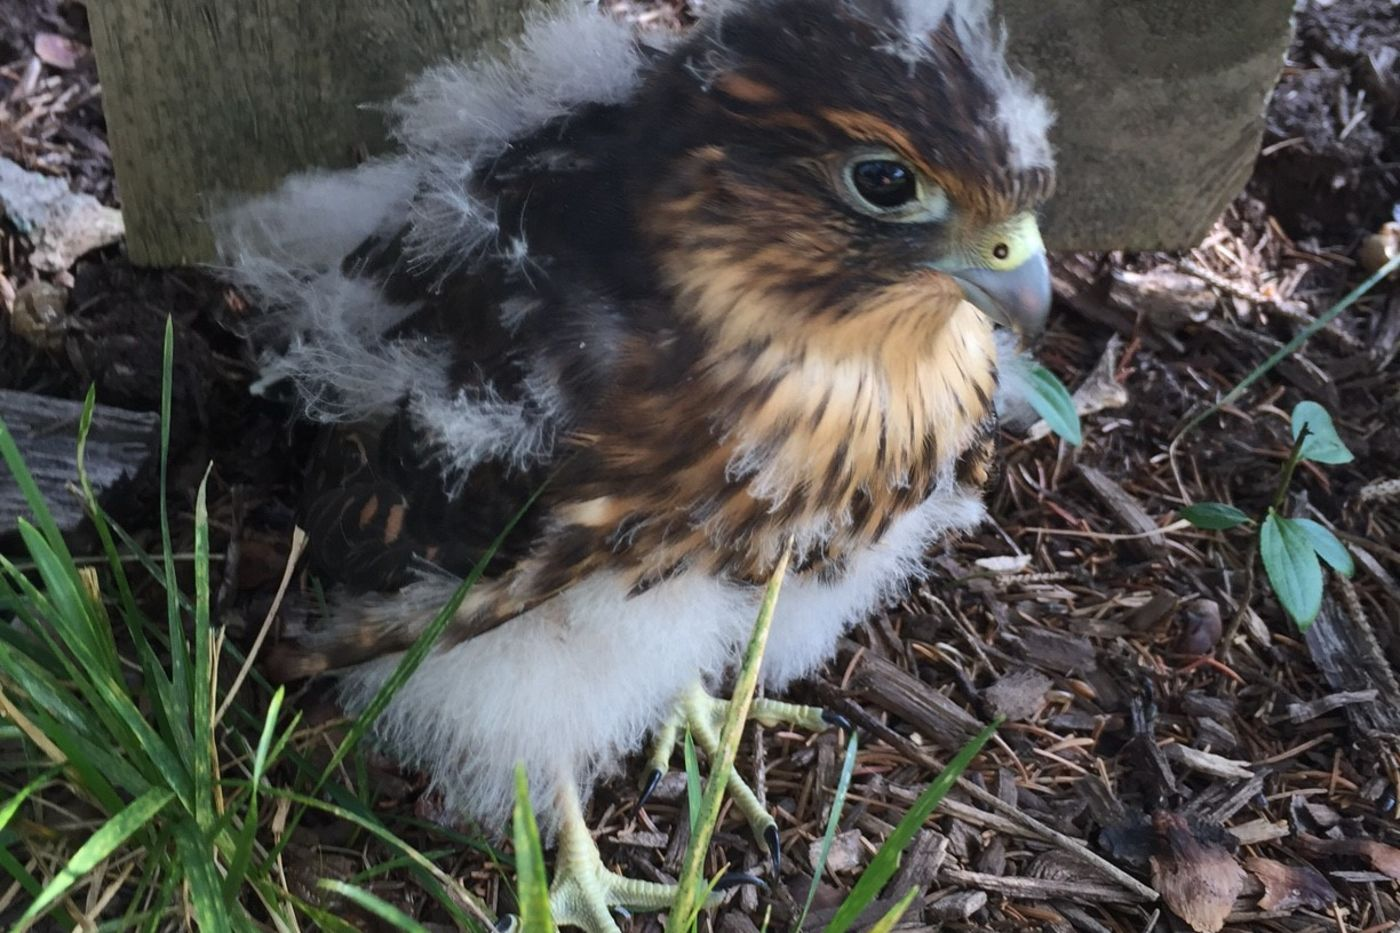 Merlin chick in Mt. Prospect, Illinois